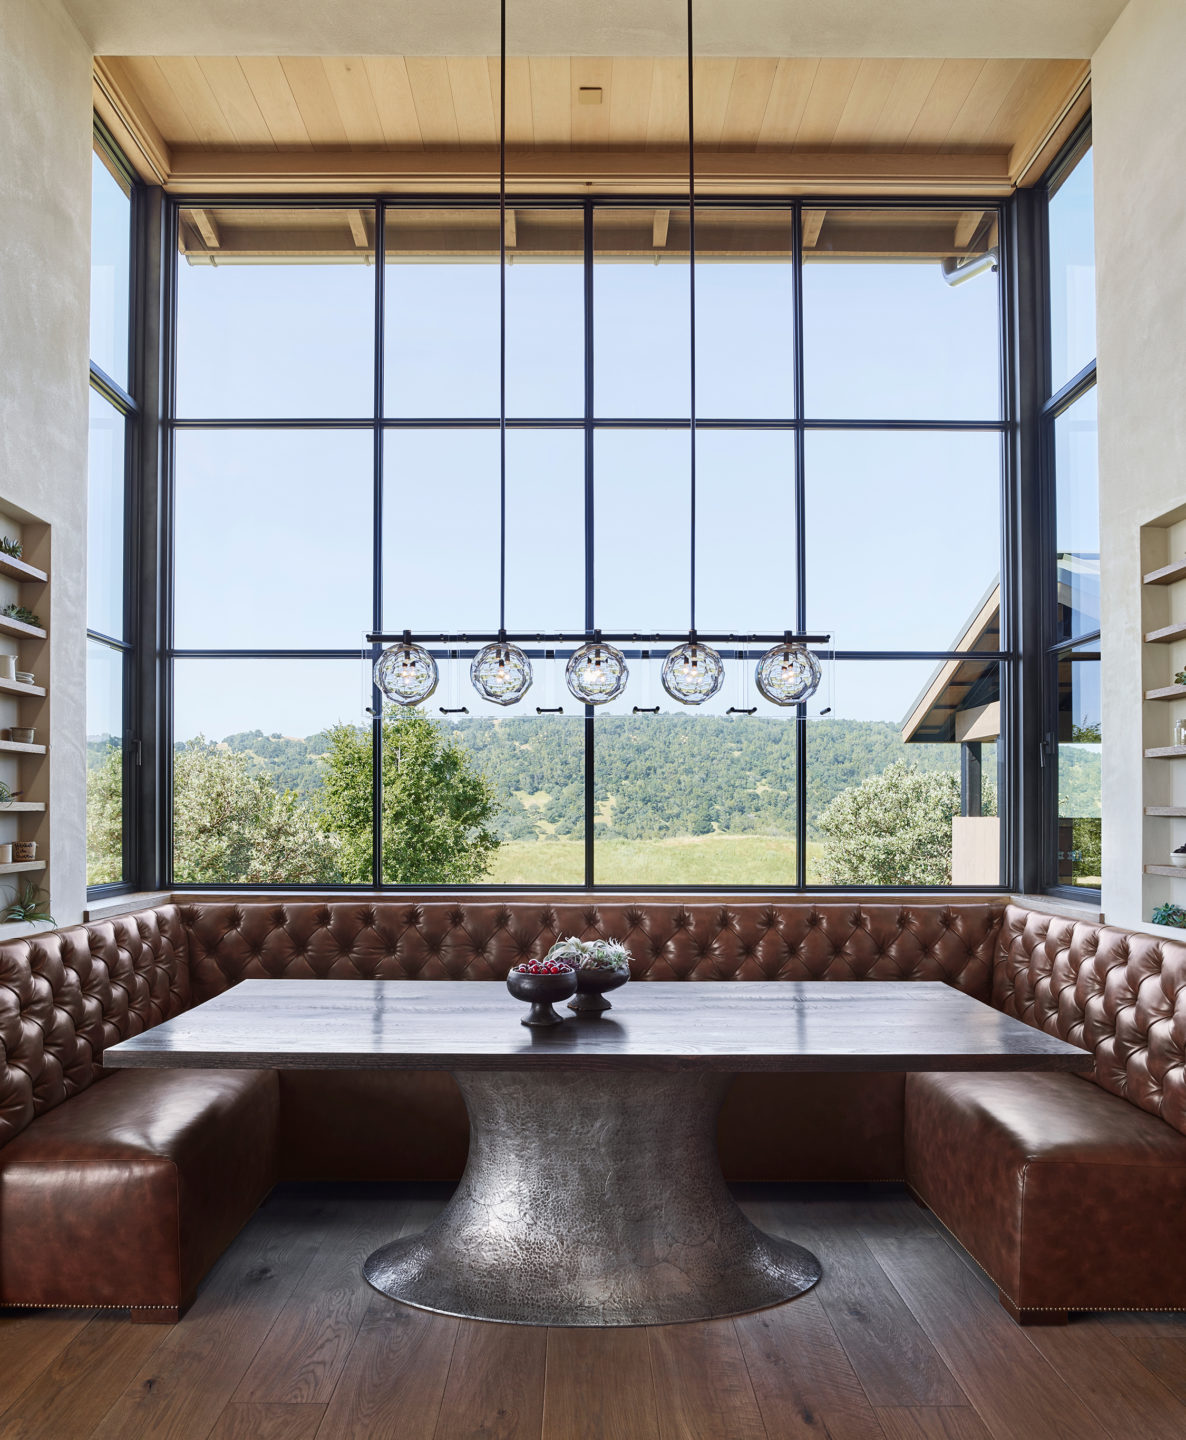 Jennifer_robins_interiors_projects_napa_valley_3_dining_room_DR_eating